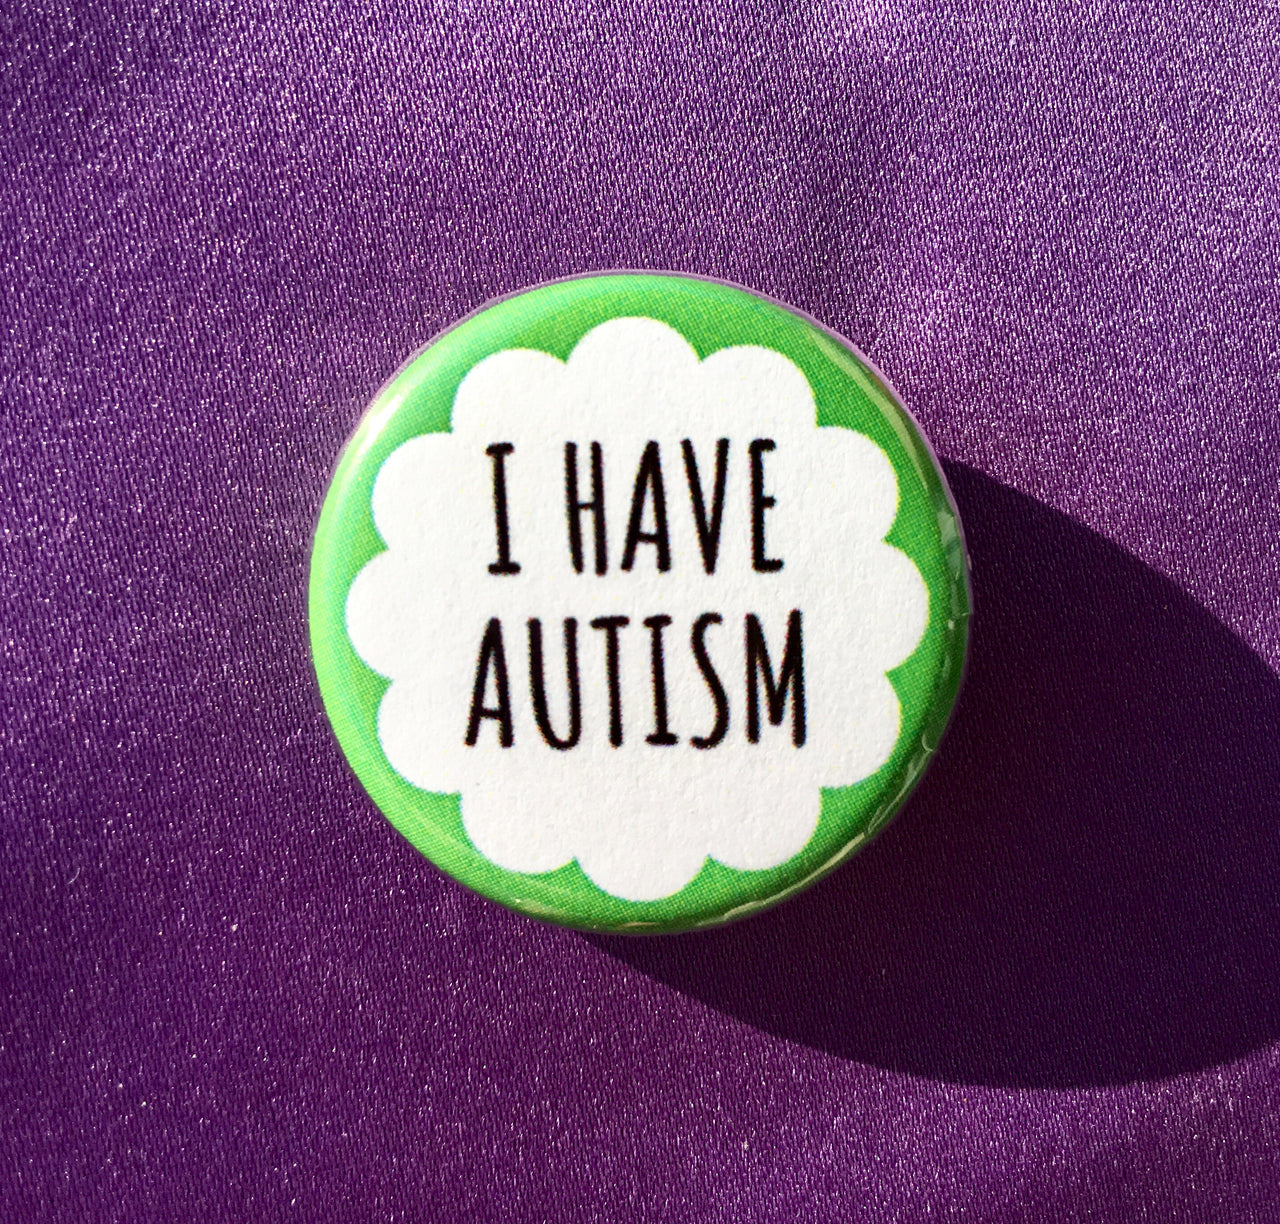 I have autism - Radical Buttons